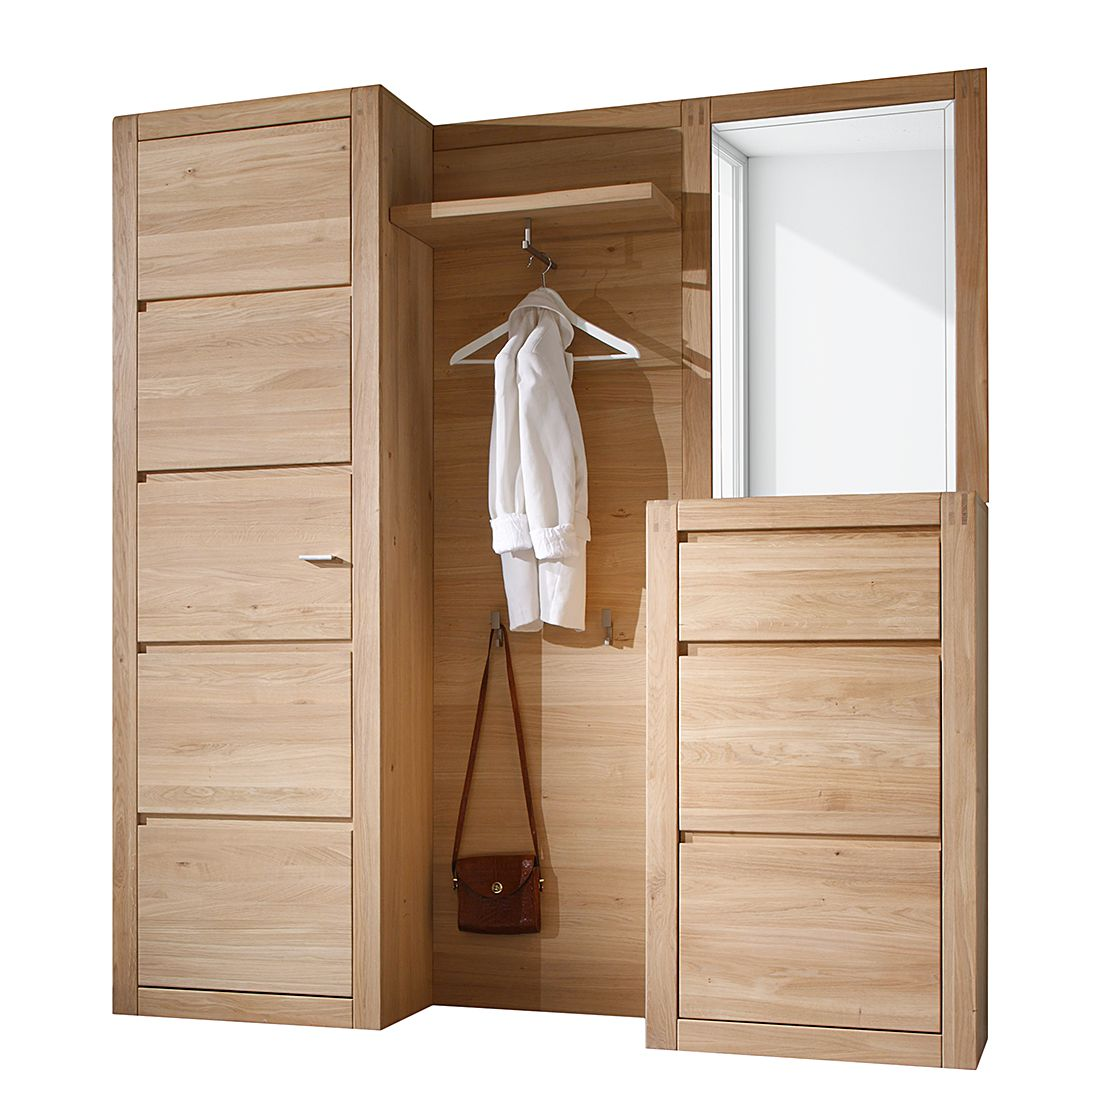 garderobe vigo 4 teilig eiche teilmassiv ge lt gewachst. Black Bedroom Furniture Sets. Home Design Ideas